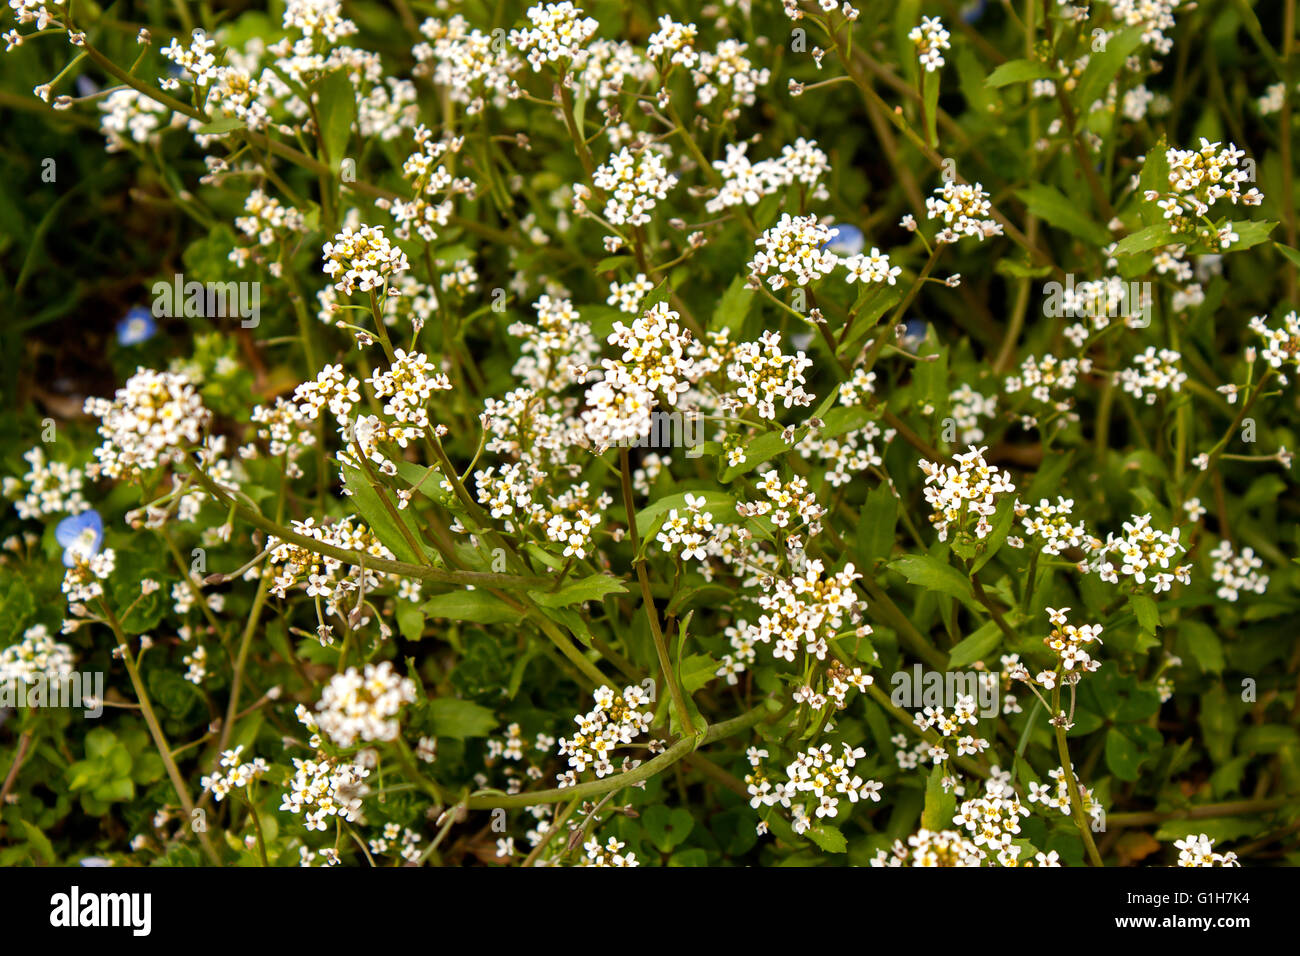 Tiny white flowers stock photos tiny white flowers stock images tiny white flowers on the green grass stock image mightylinksfo